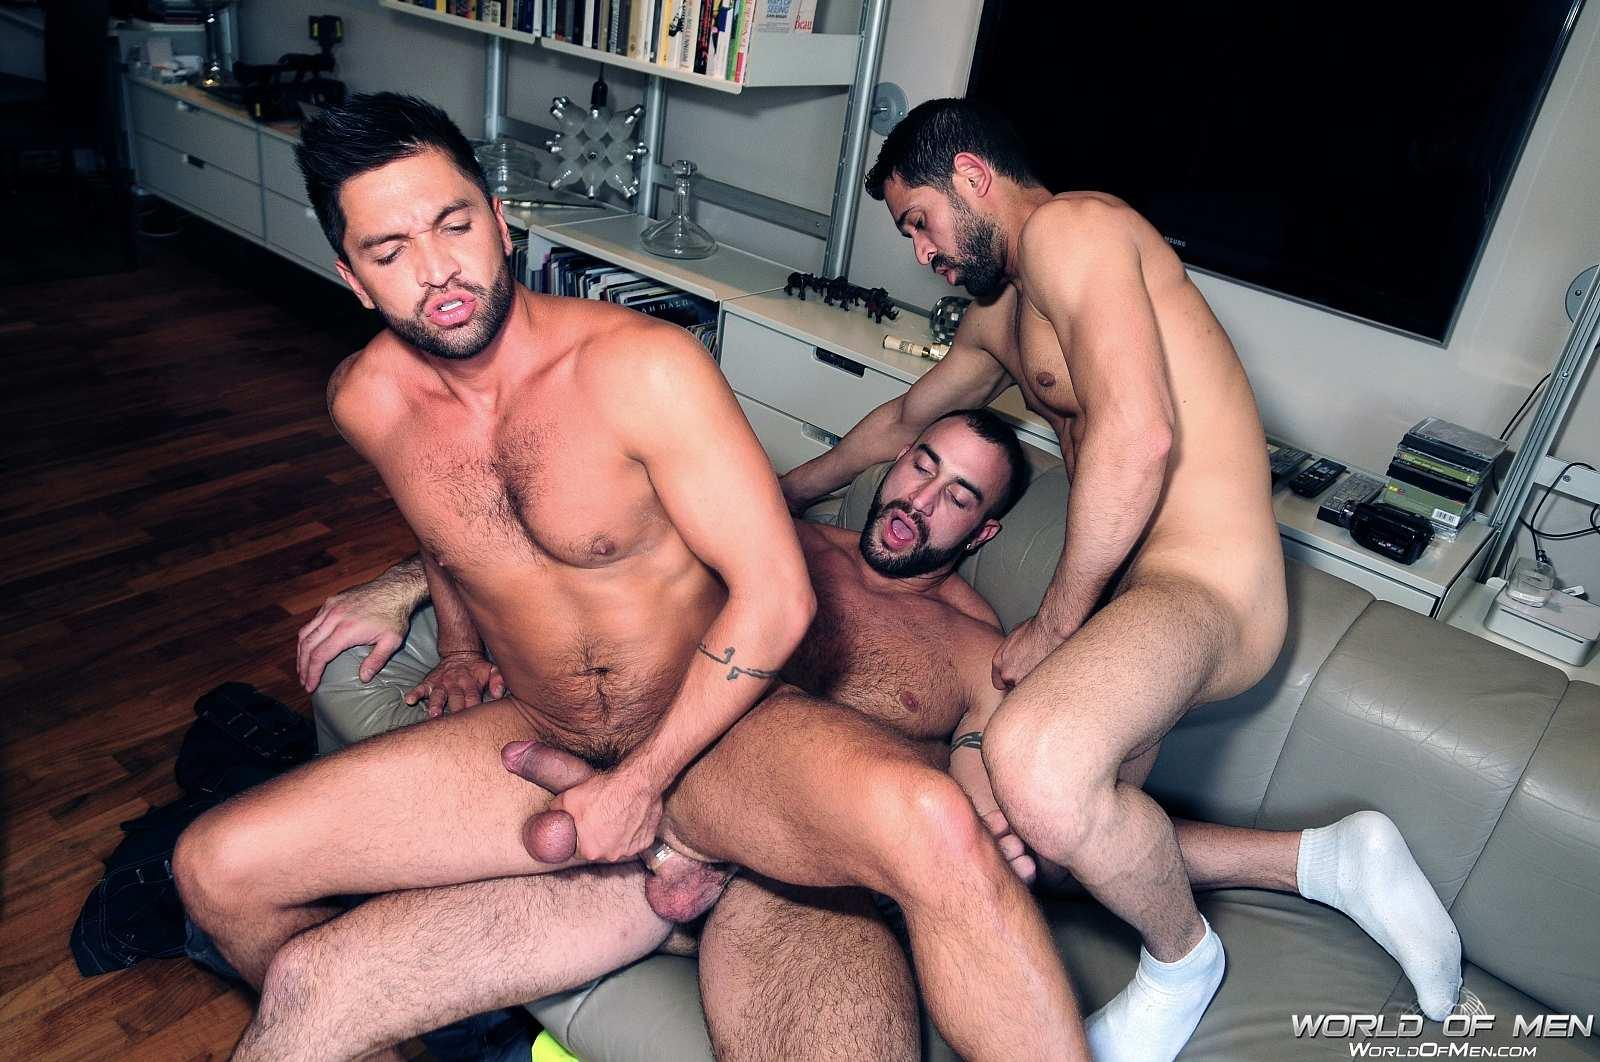 World-Of-Men-Spencer-Reed-and-Dominic-Pacifico-and-Billy-Baval-Taking-Two-Huge-Cocks-Up-The-Ass-Tagteam-Amateur-Gay-Porn-19 Dominic Pacifico Getting Tag Teamed By Two Huge Cocks